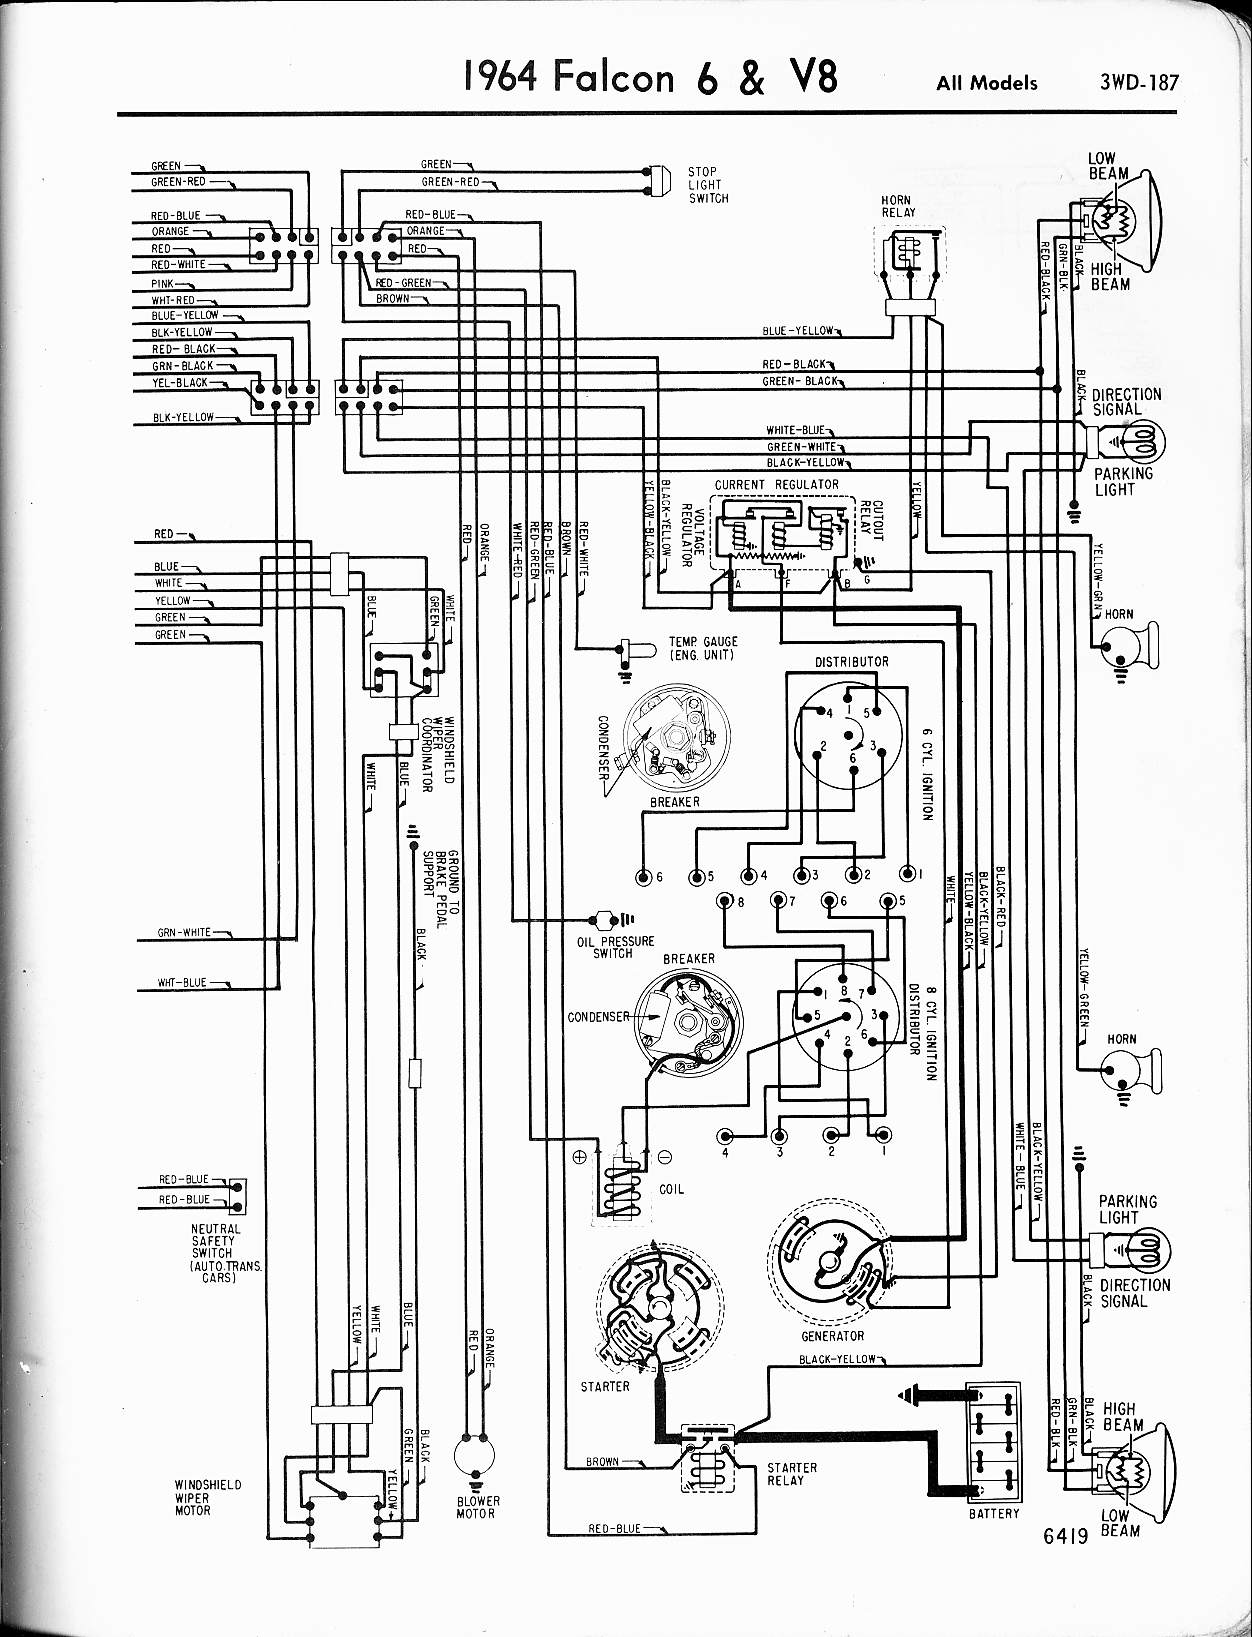 MWire5765 187 57 65 ford wiring diagrams 1964 falcon wiring diagram at aneh.co